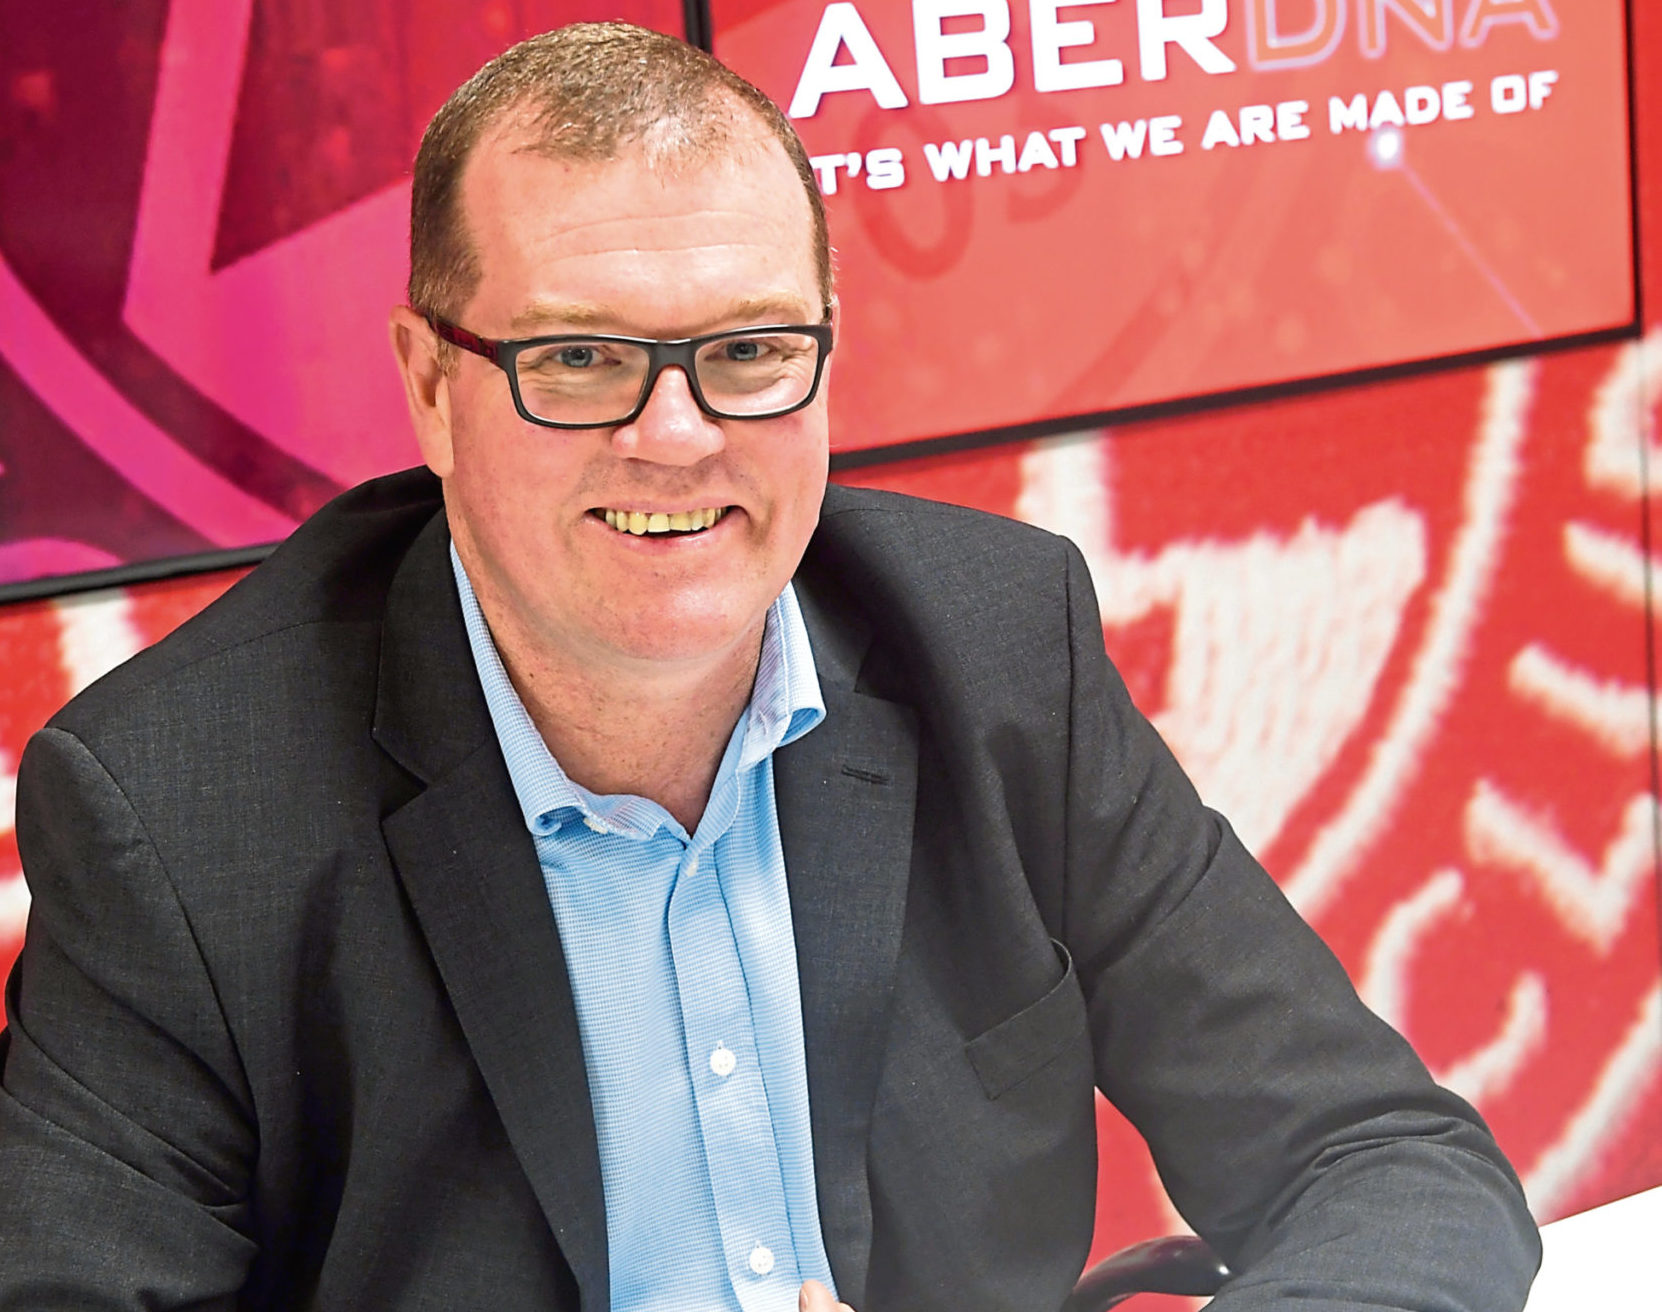 Aberdeen commercial director Rob Wicks